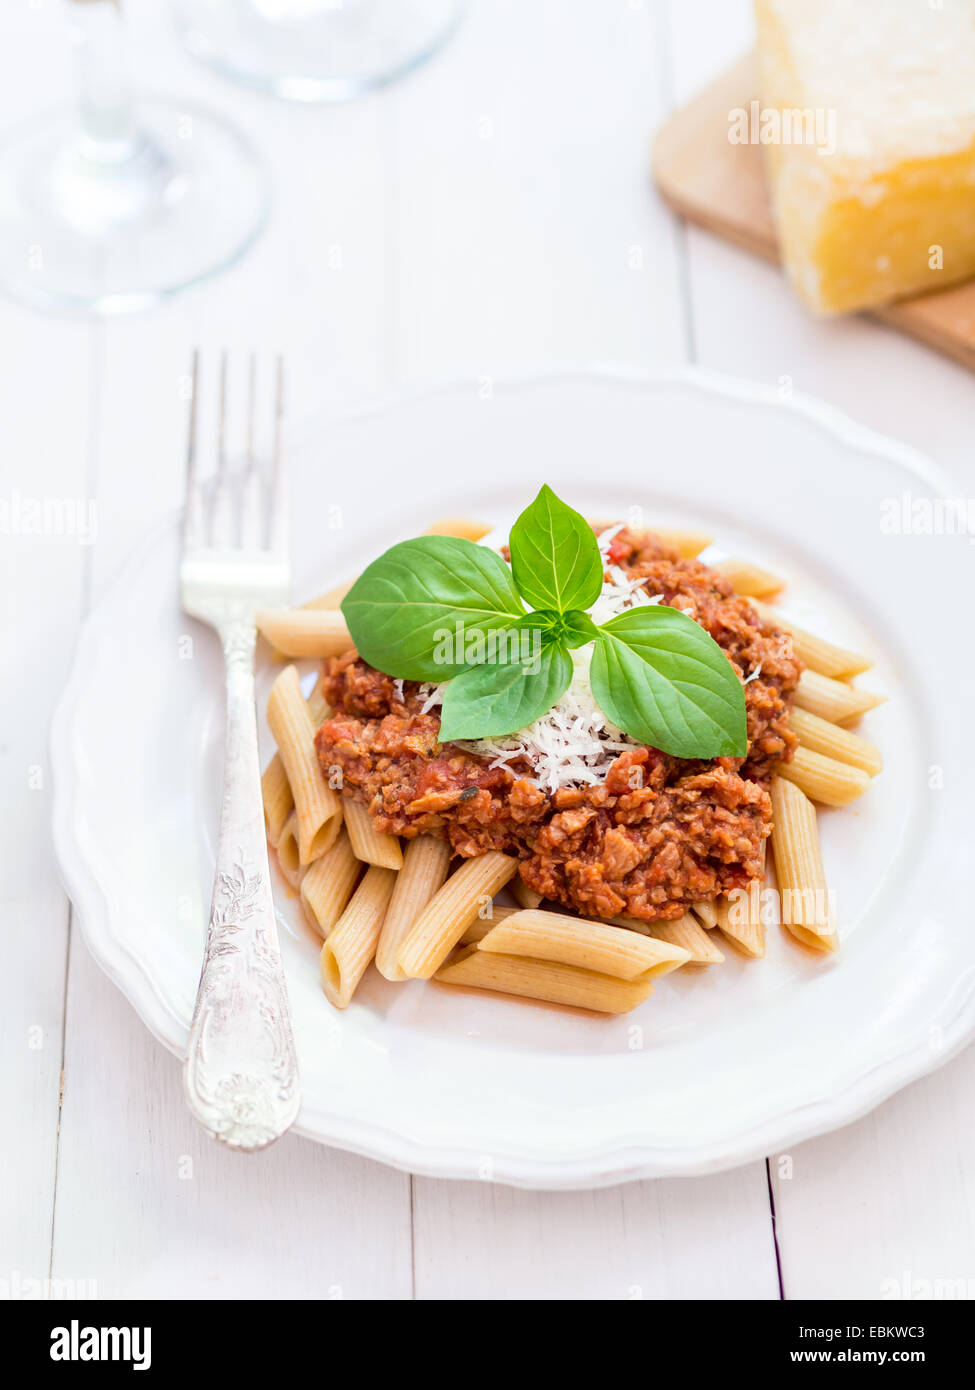 Whole grain penne pasta with vegetarian Bolognese sauce and Parmesan cheese - Stock Image